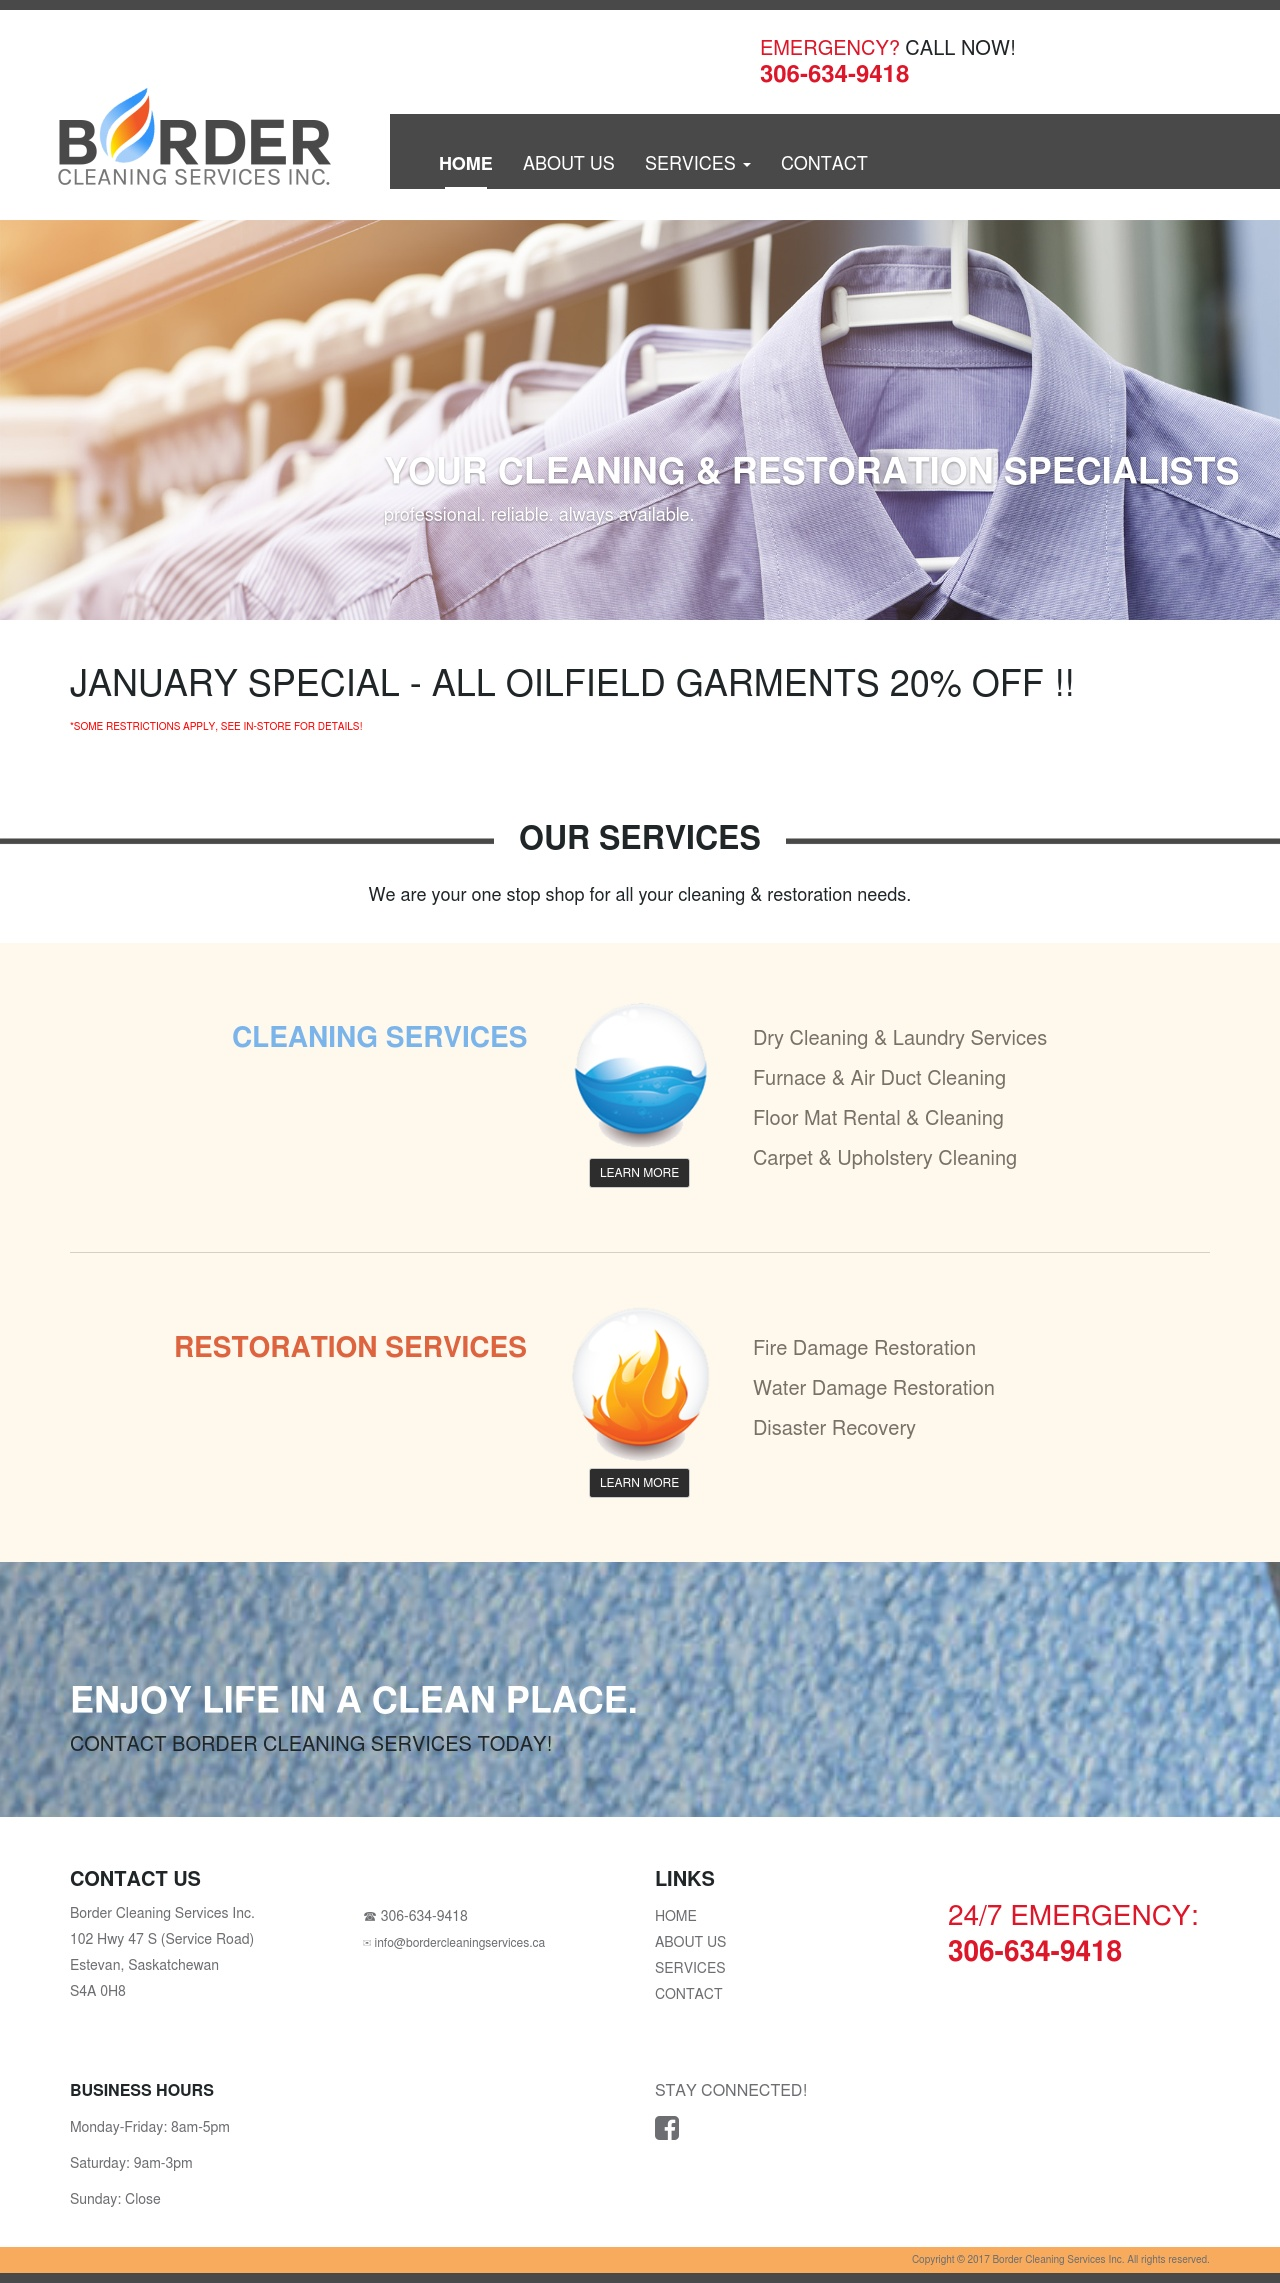 DMS Services Website Portfolio - Border Cleaning Services Inc.